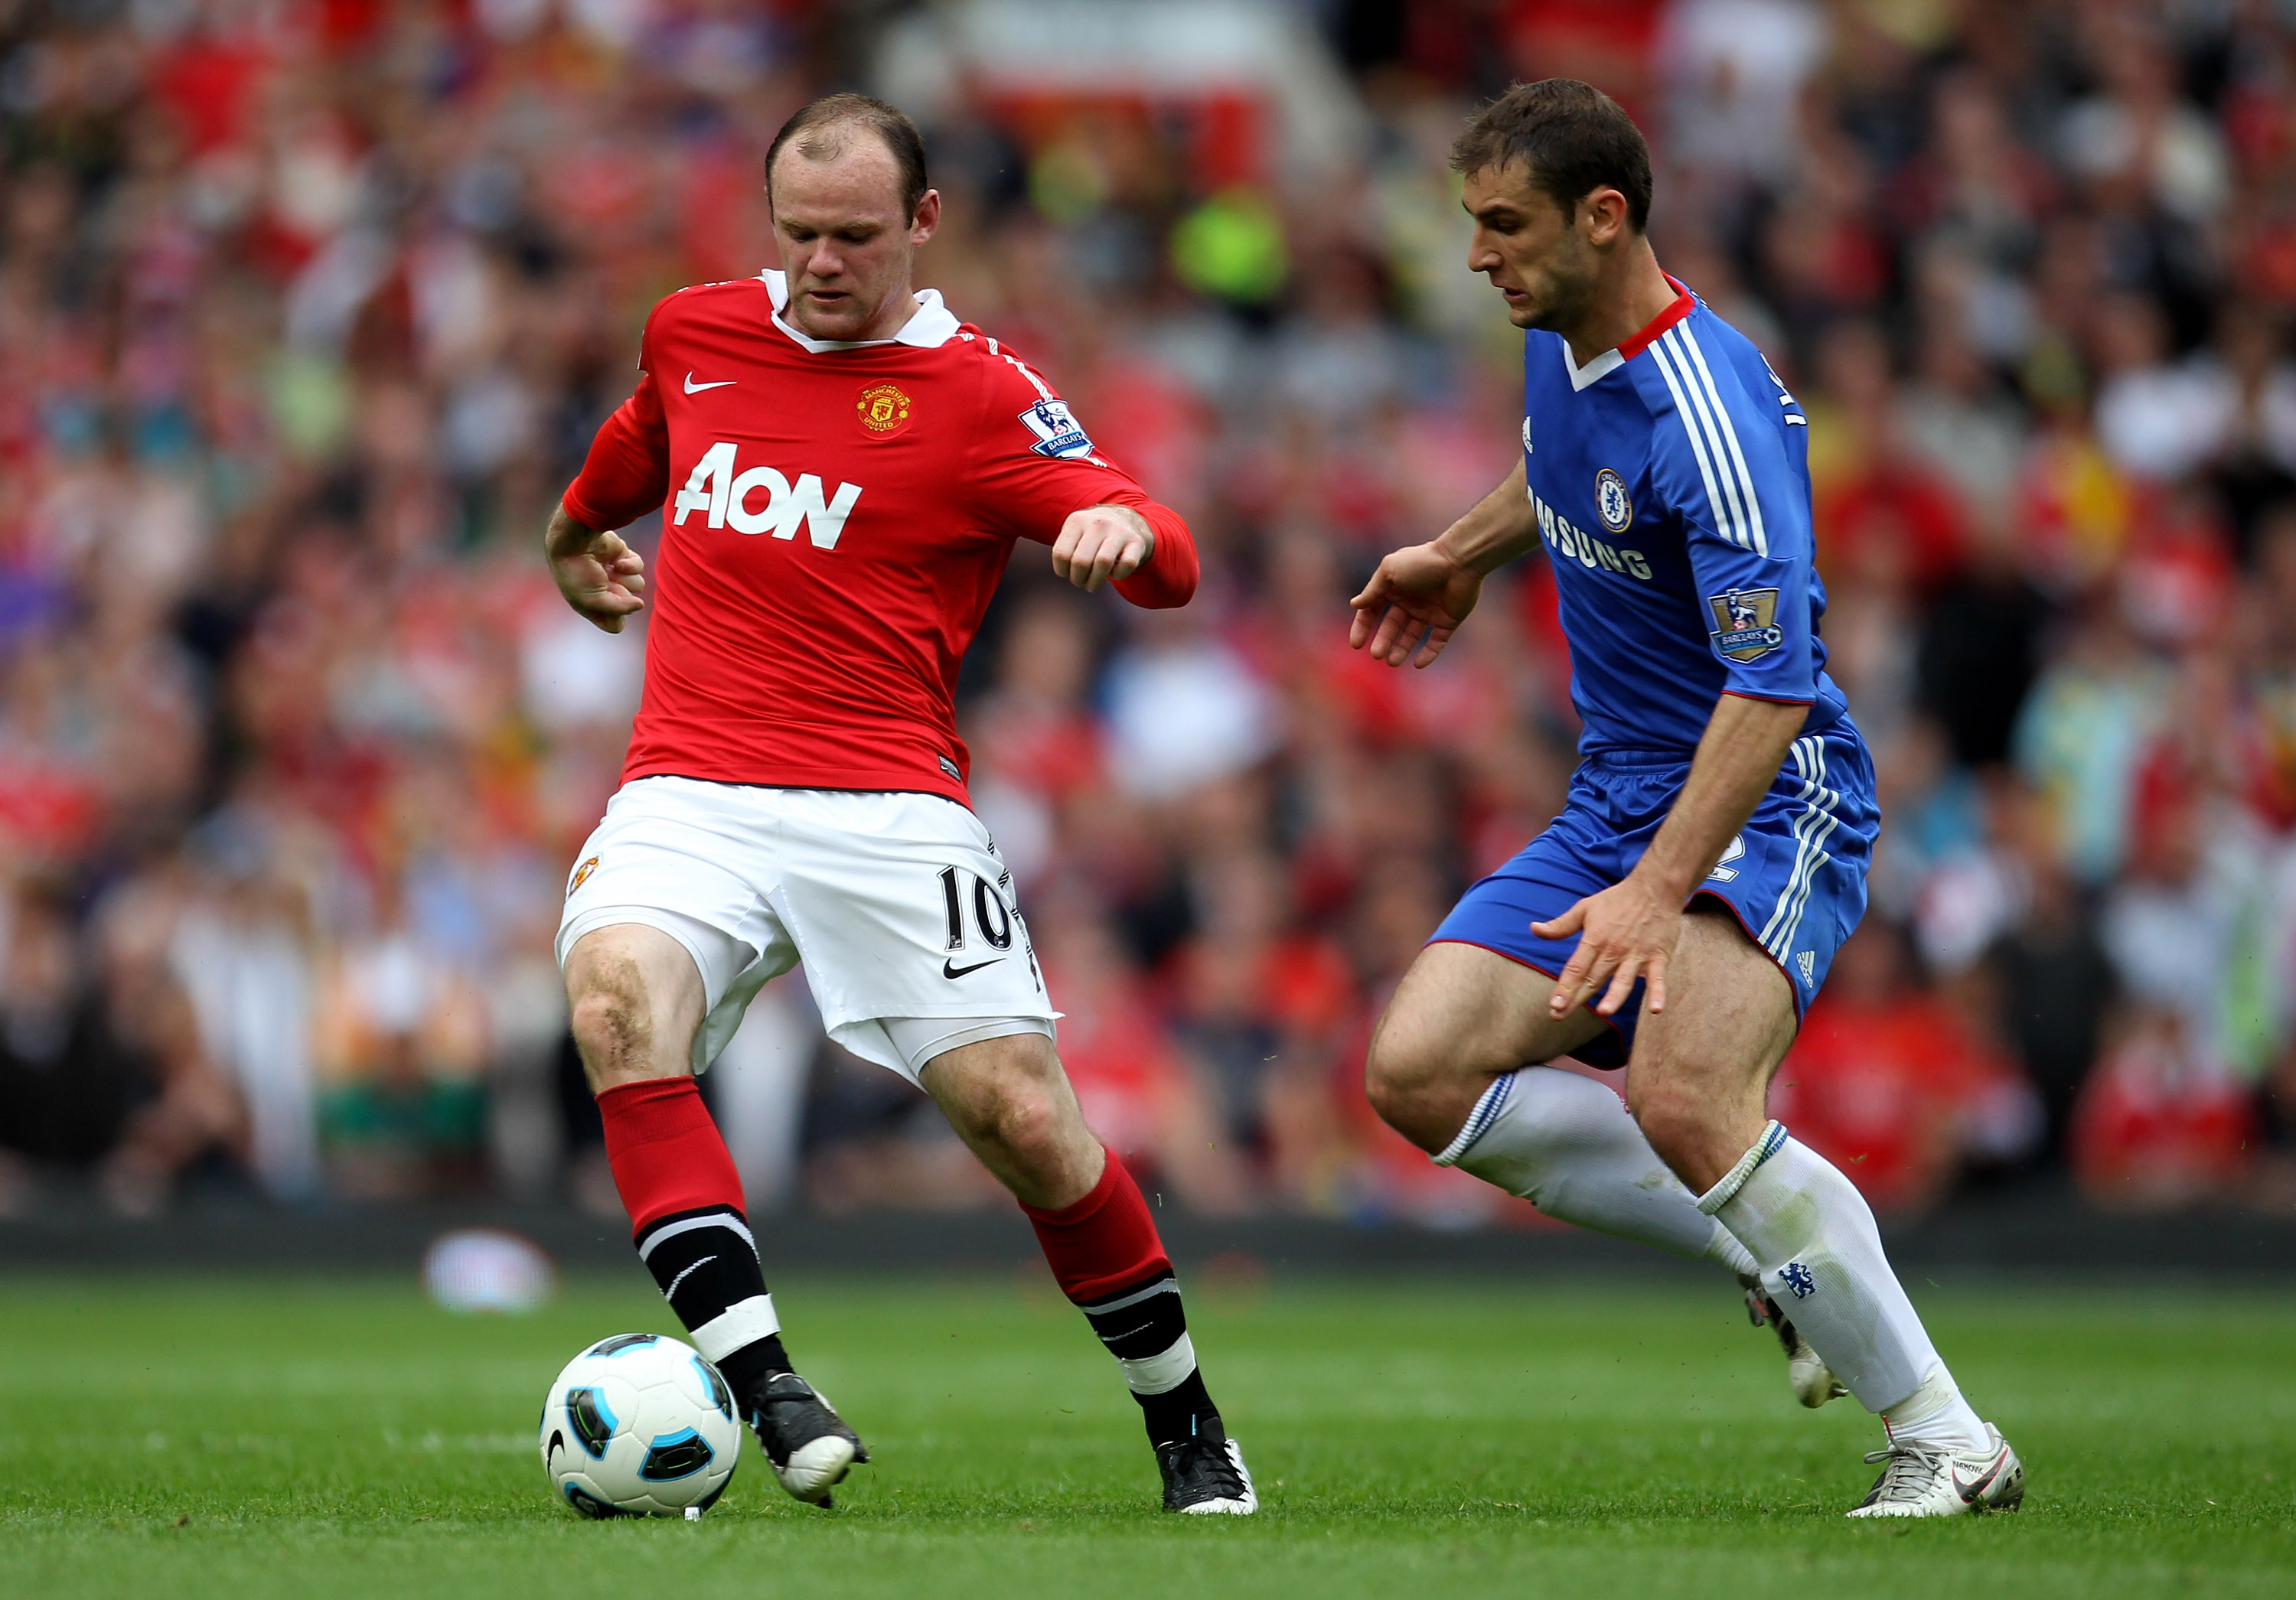 Ivanovic just before a tackle that should have earned him a second yellow card against Manchester United